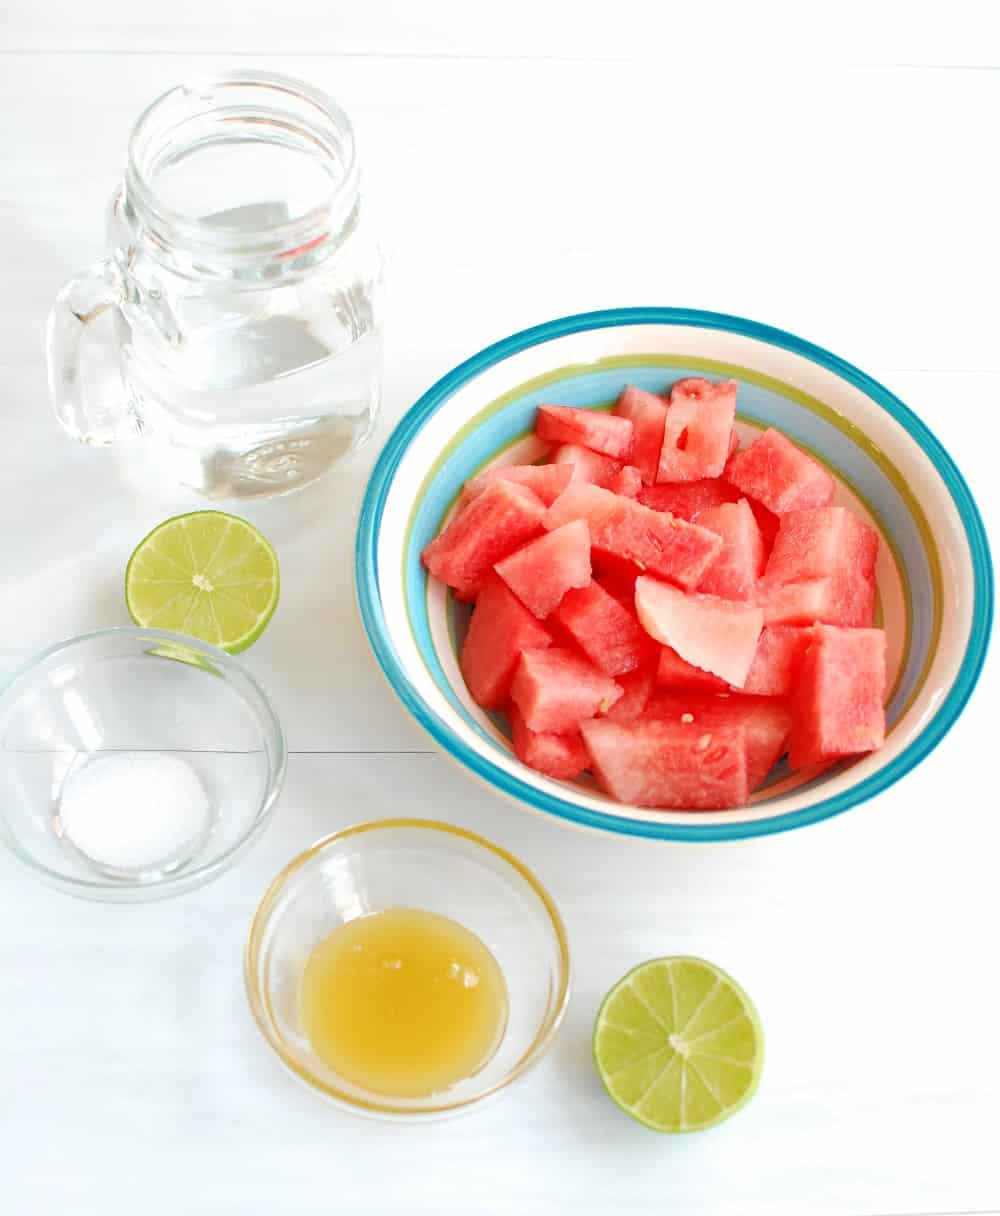 Ingredients to make a watermelon sports drink